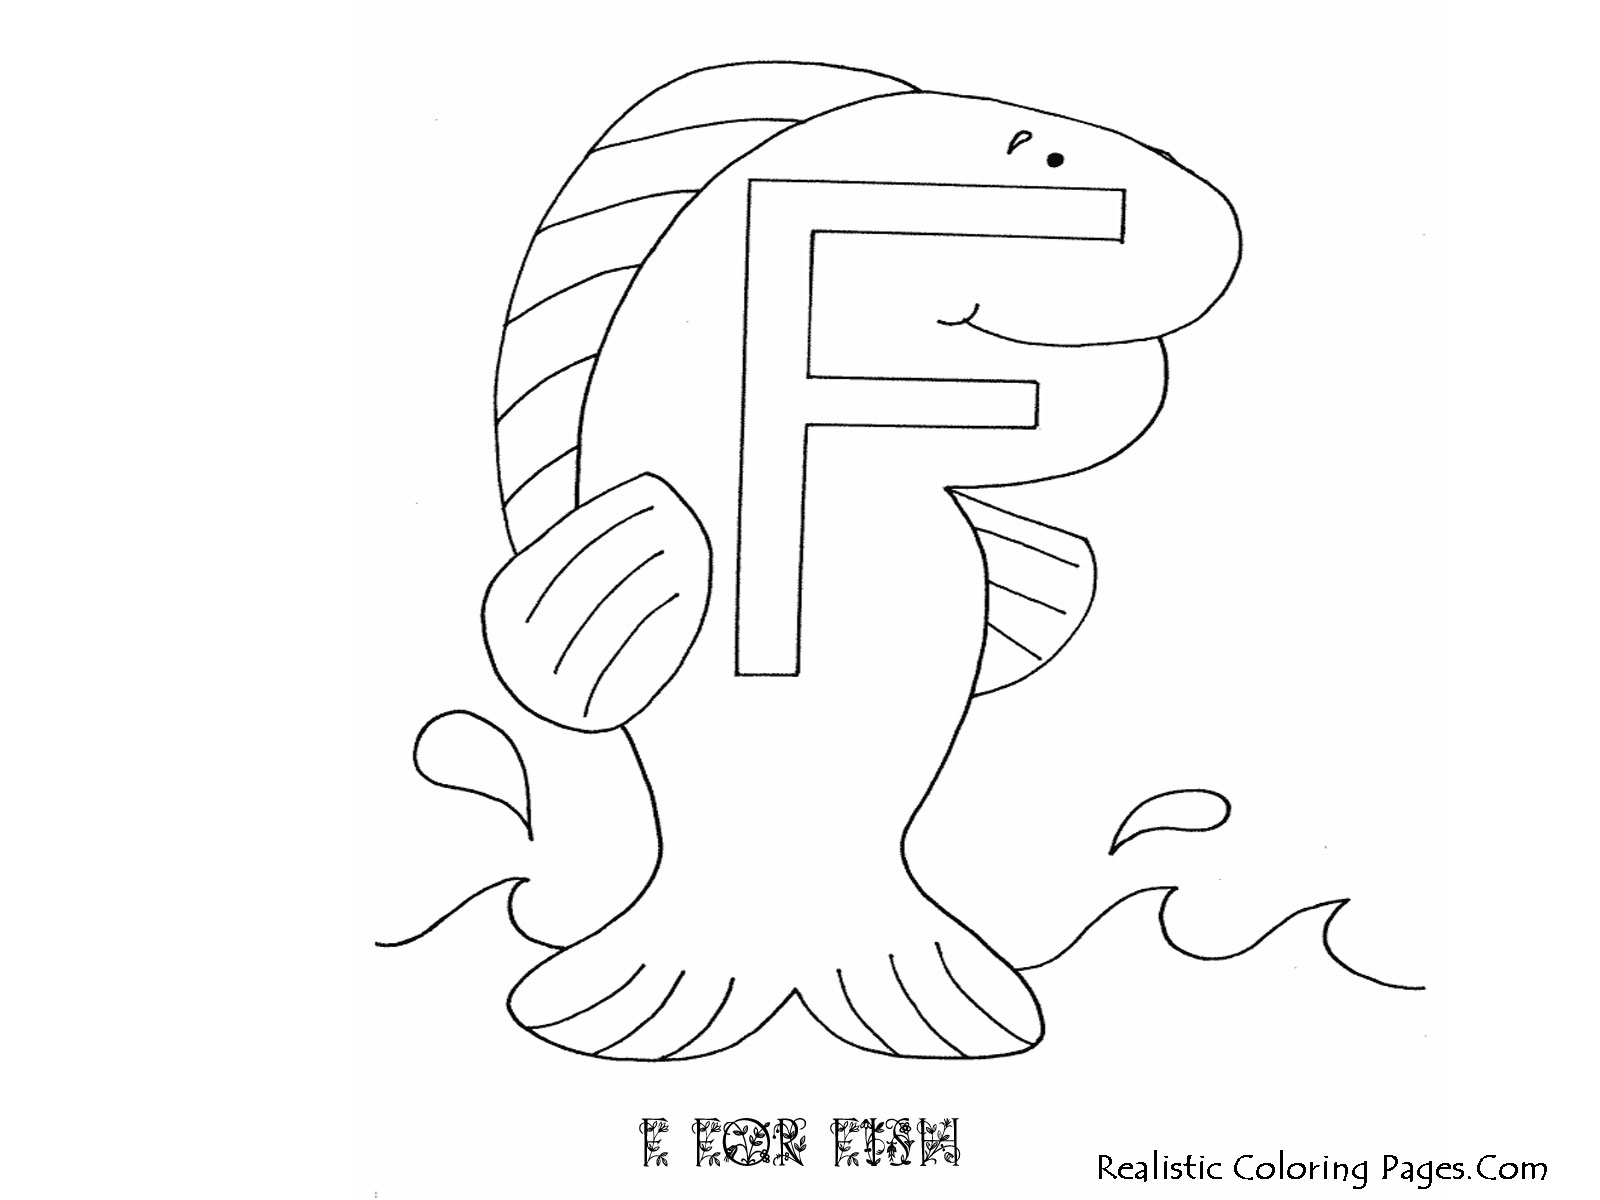 alphabet coloring pages download - photo#42